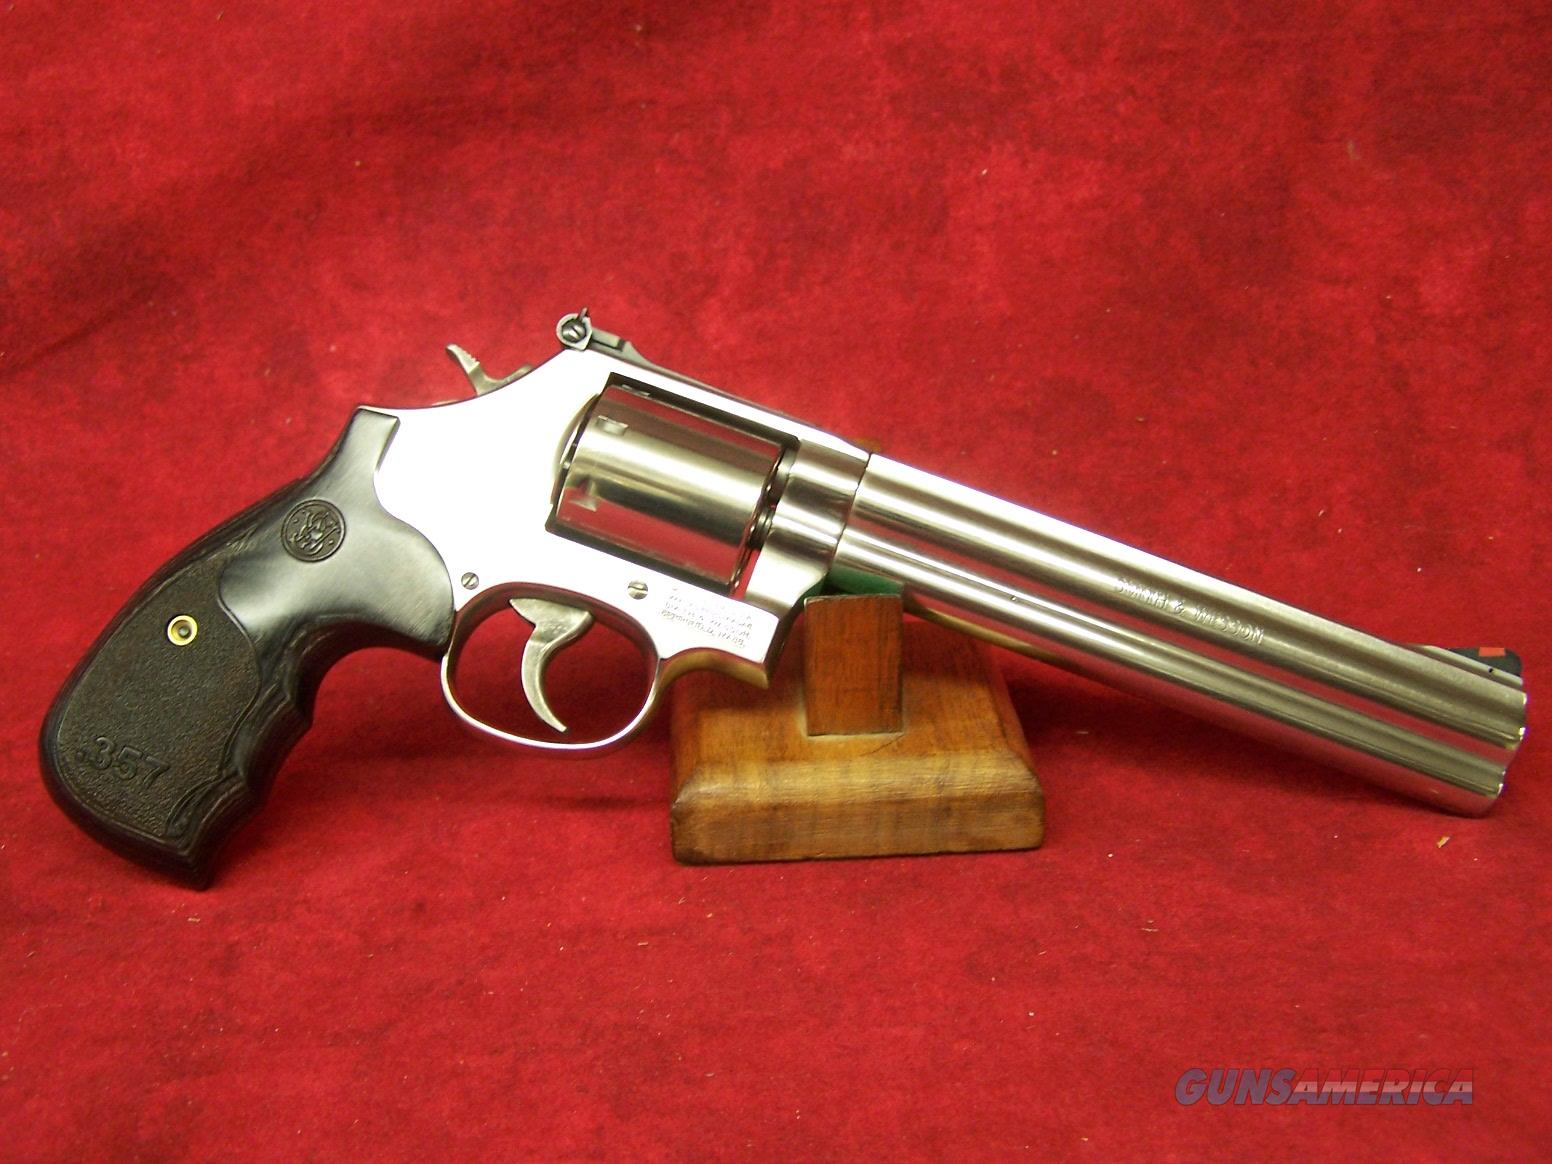 "Smith & Wesson 686-6 357mag 7"" Barrel (150855)  Guns > Pistols > Smith & Wesson Revolvers > Full Frame Revolver"